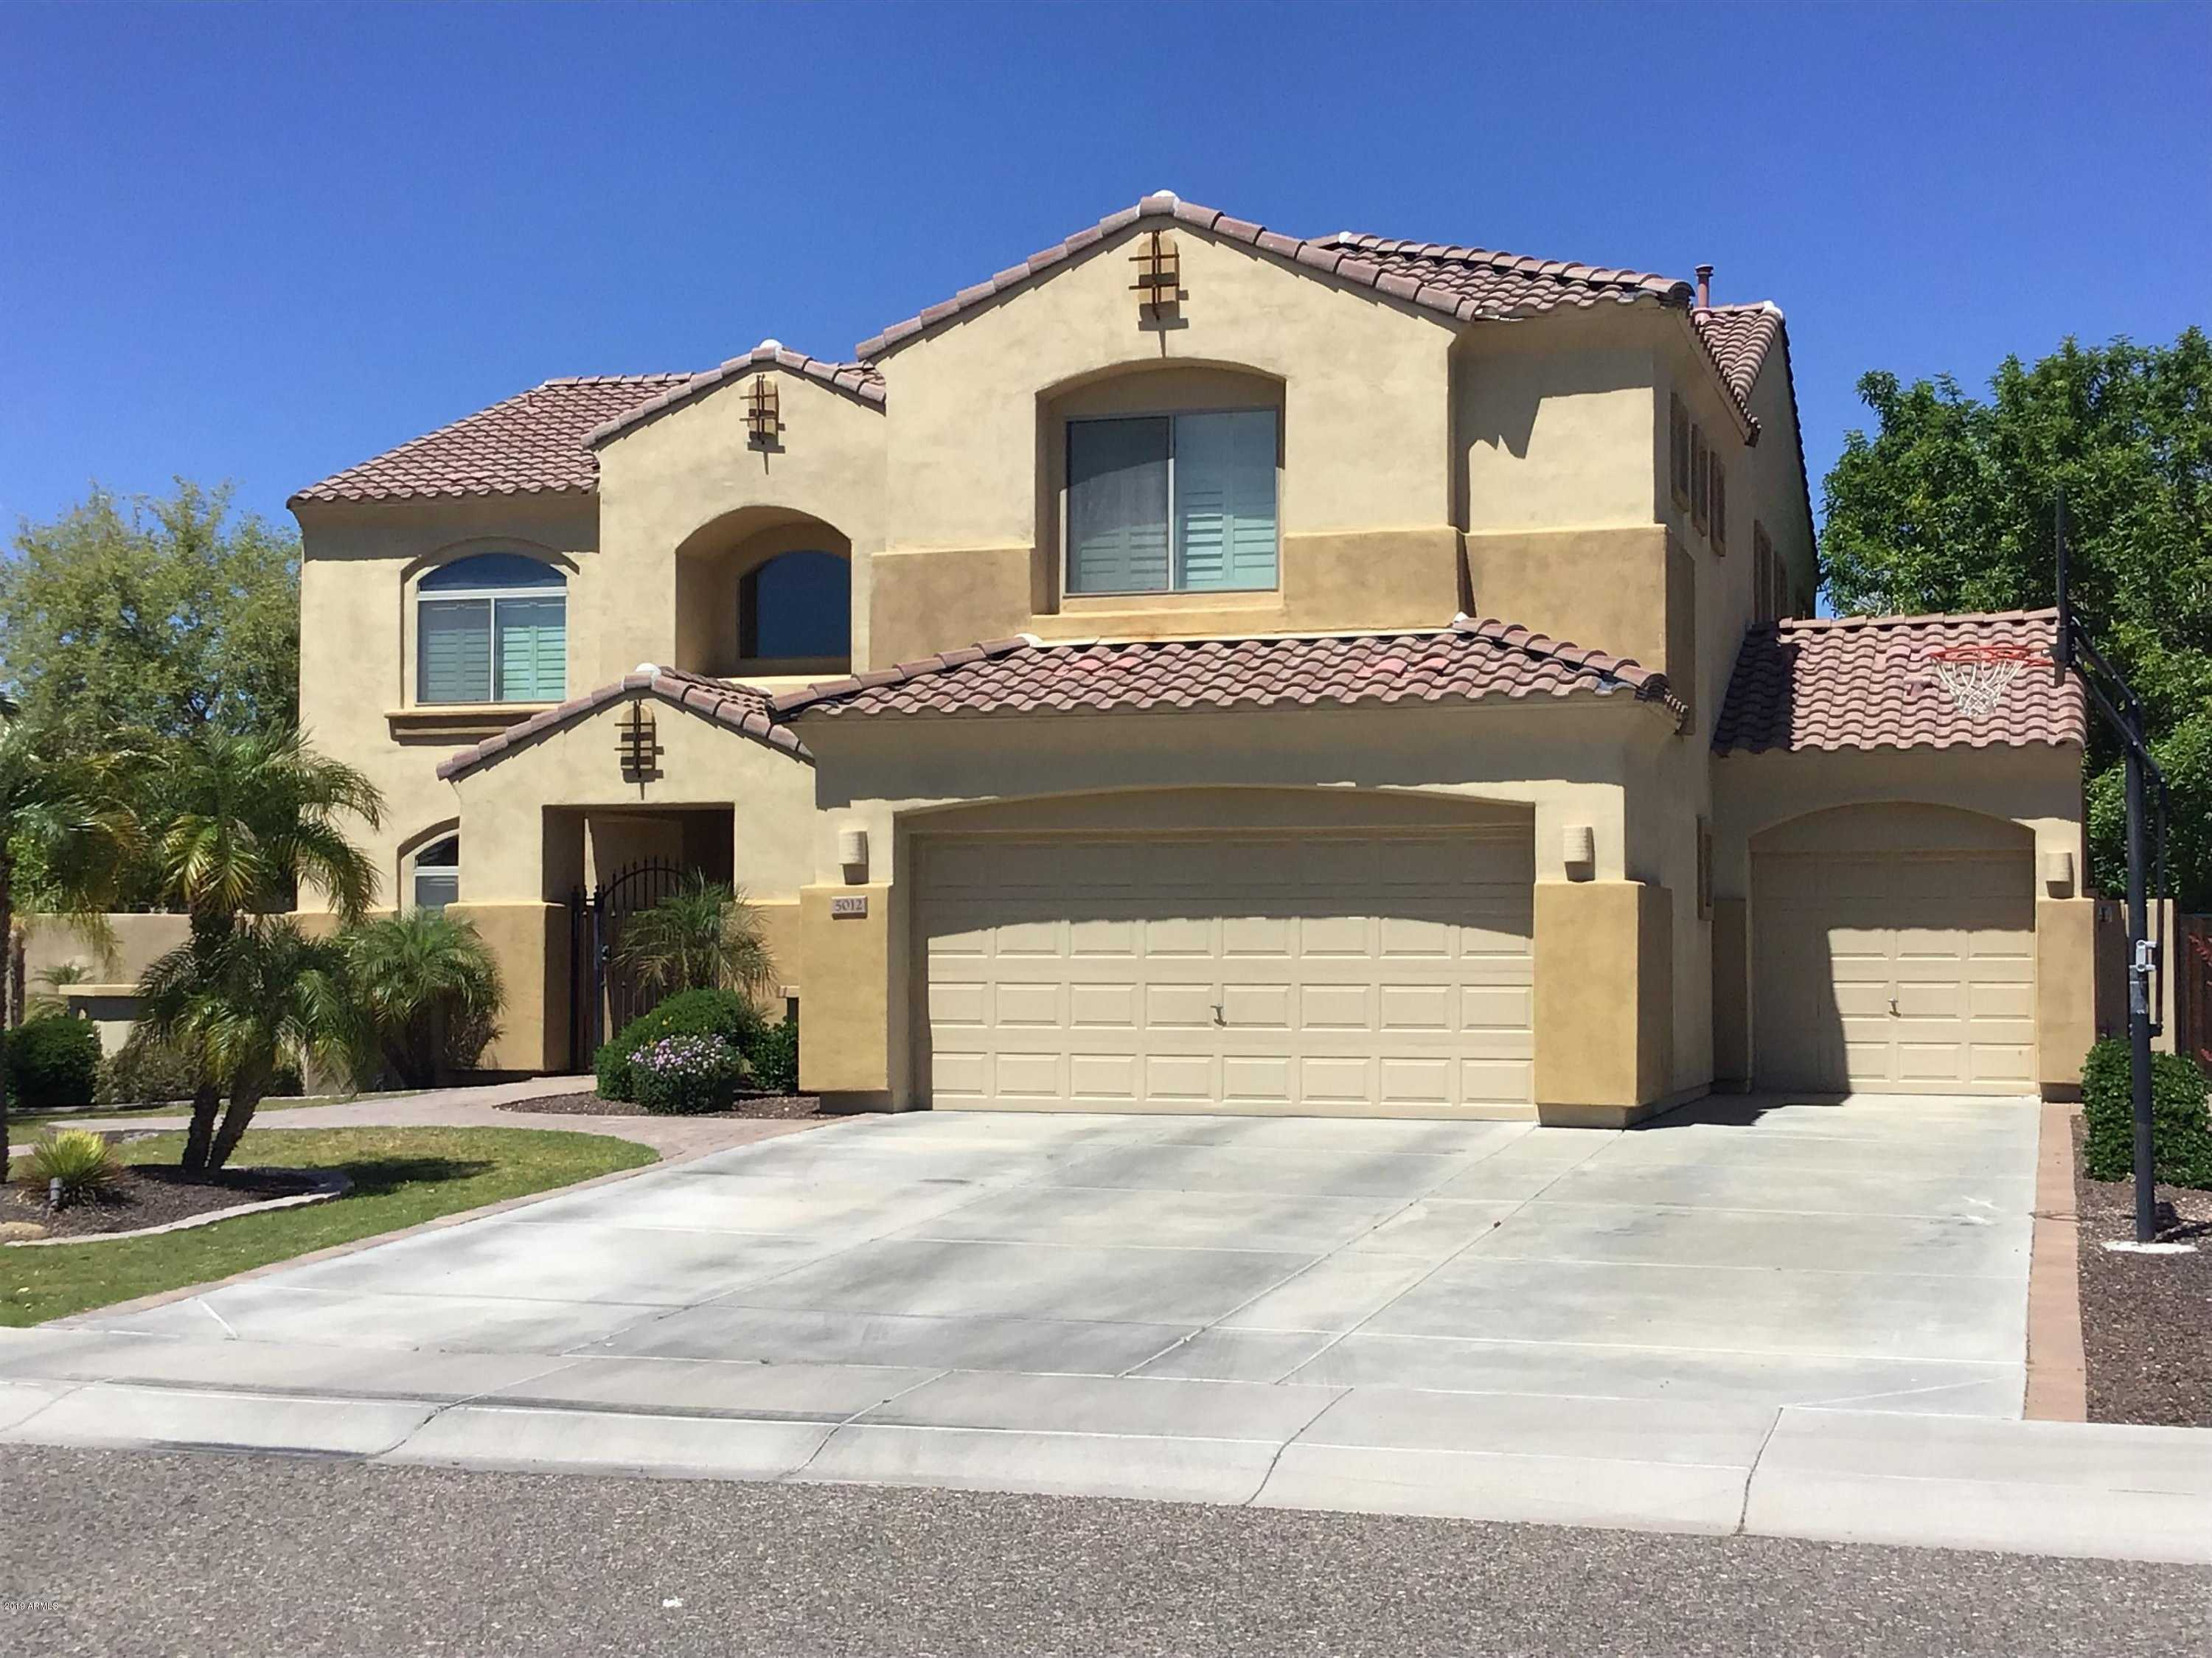 $495,000 - 5Br/3Ba - Home for Sale in Stetson Valley Parcels 7 8 9 10, Phoenix